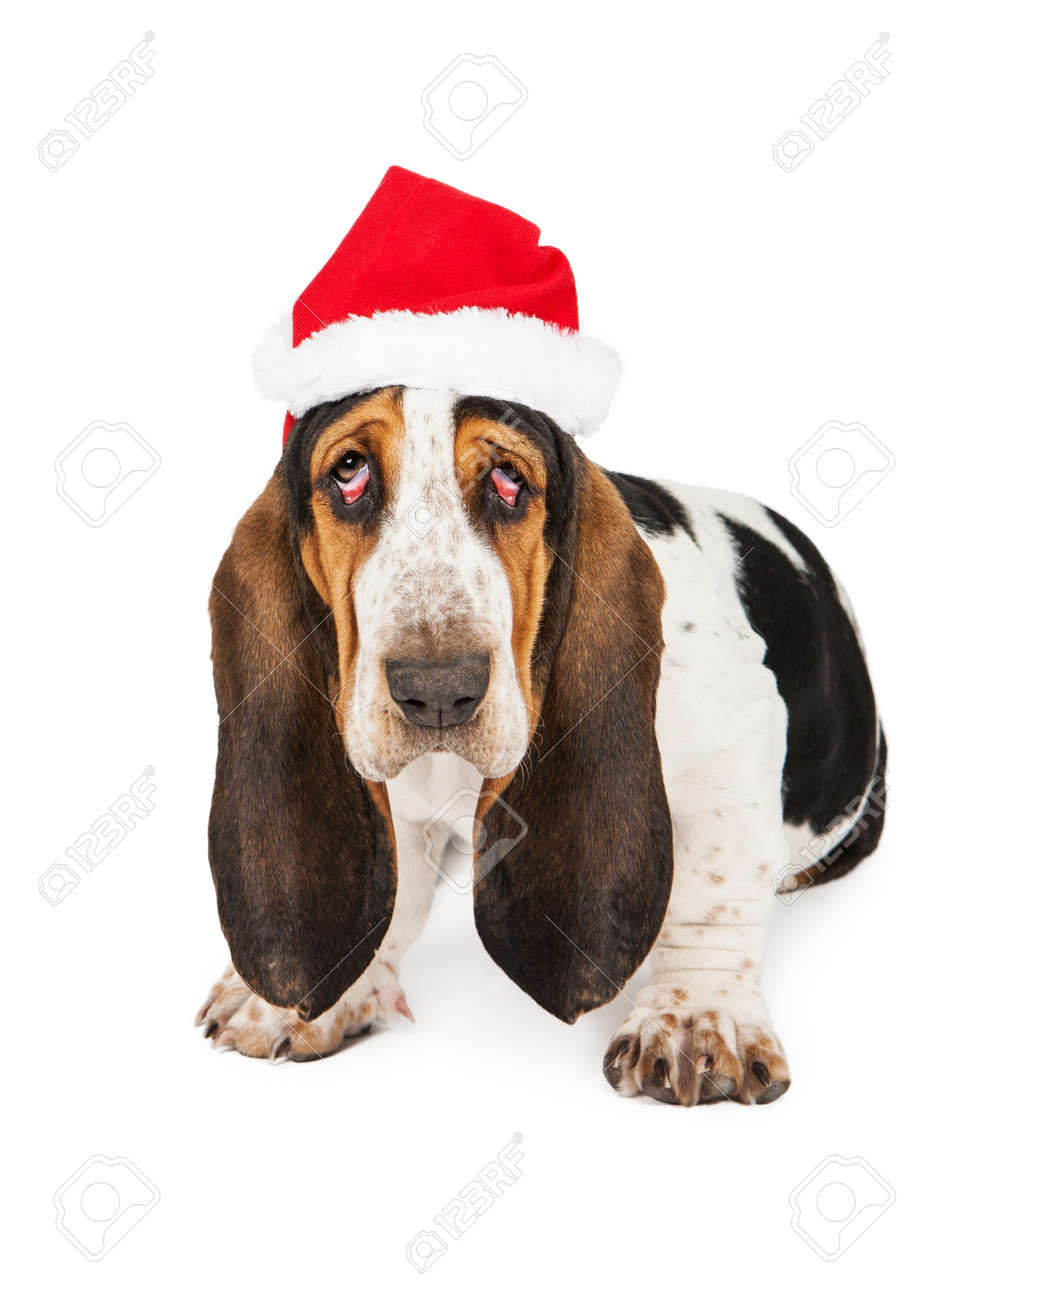 bc19af383de A tired young Basset Hound breed puppy dog with bloodshot droopy eyes  wearing a Christmas Santa